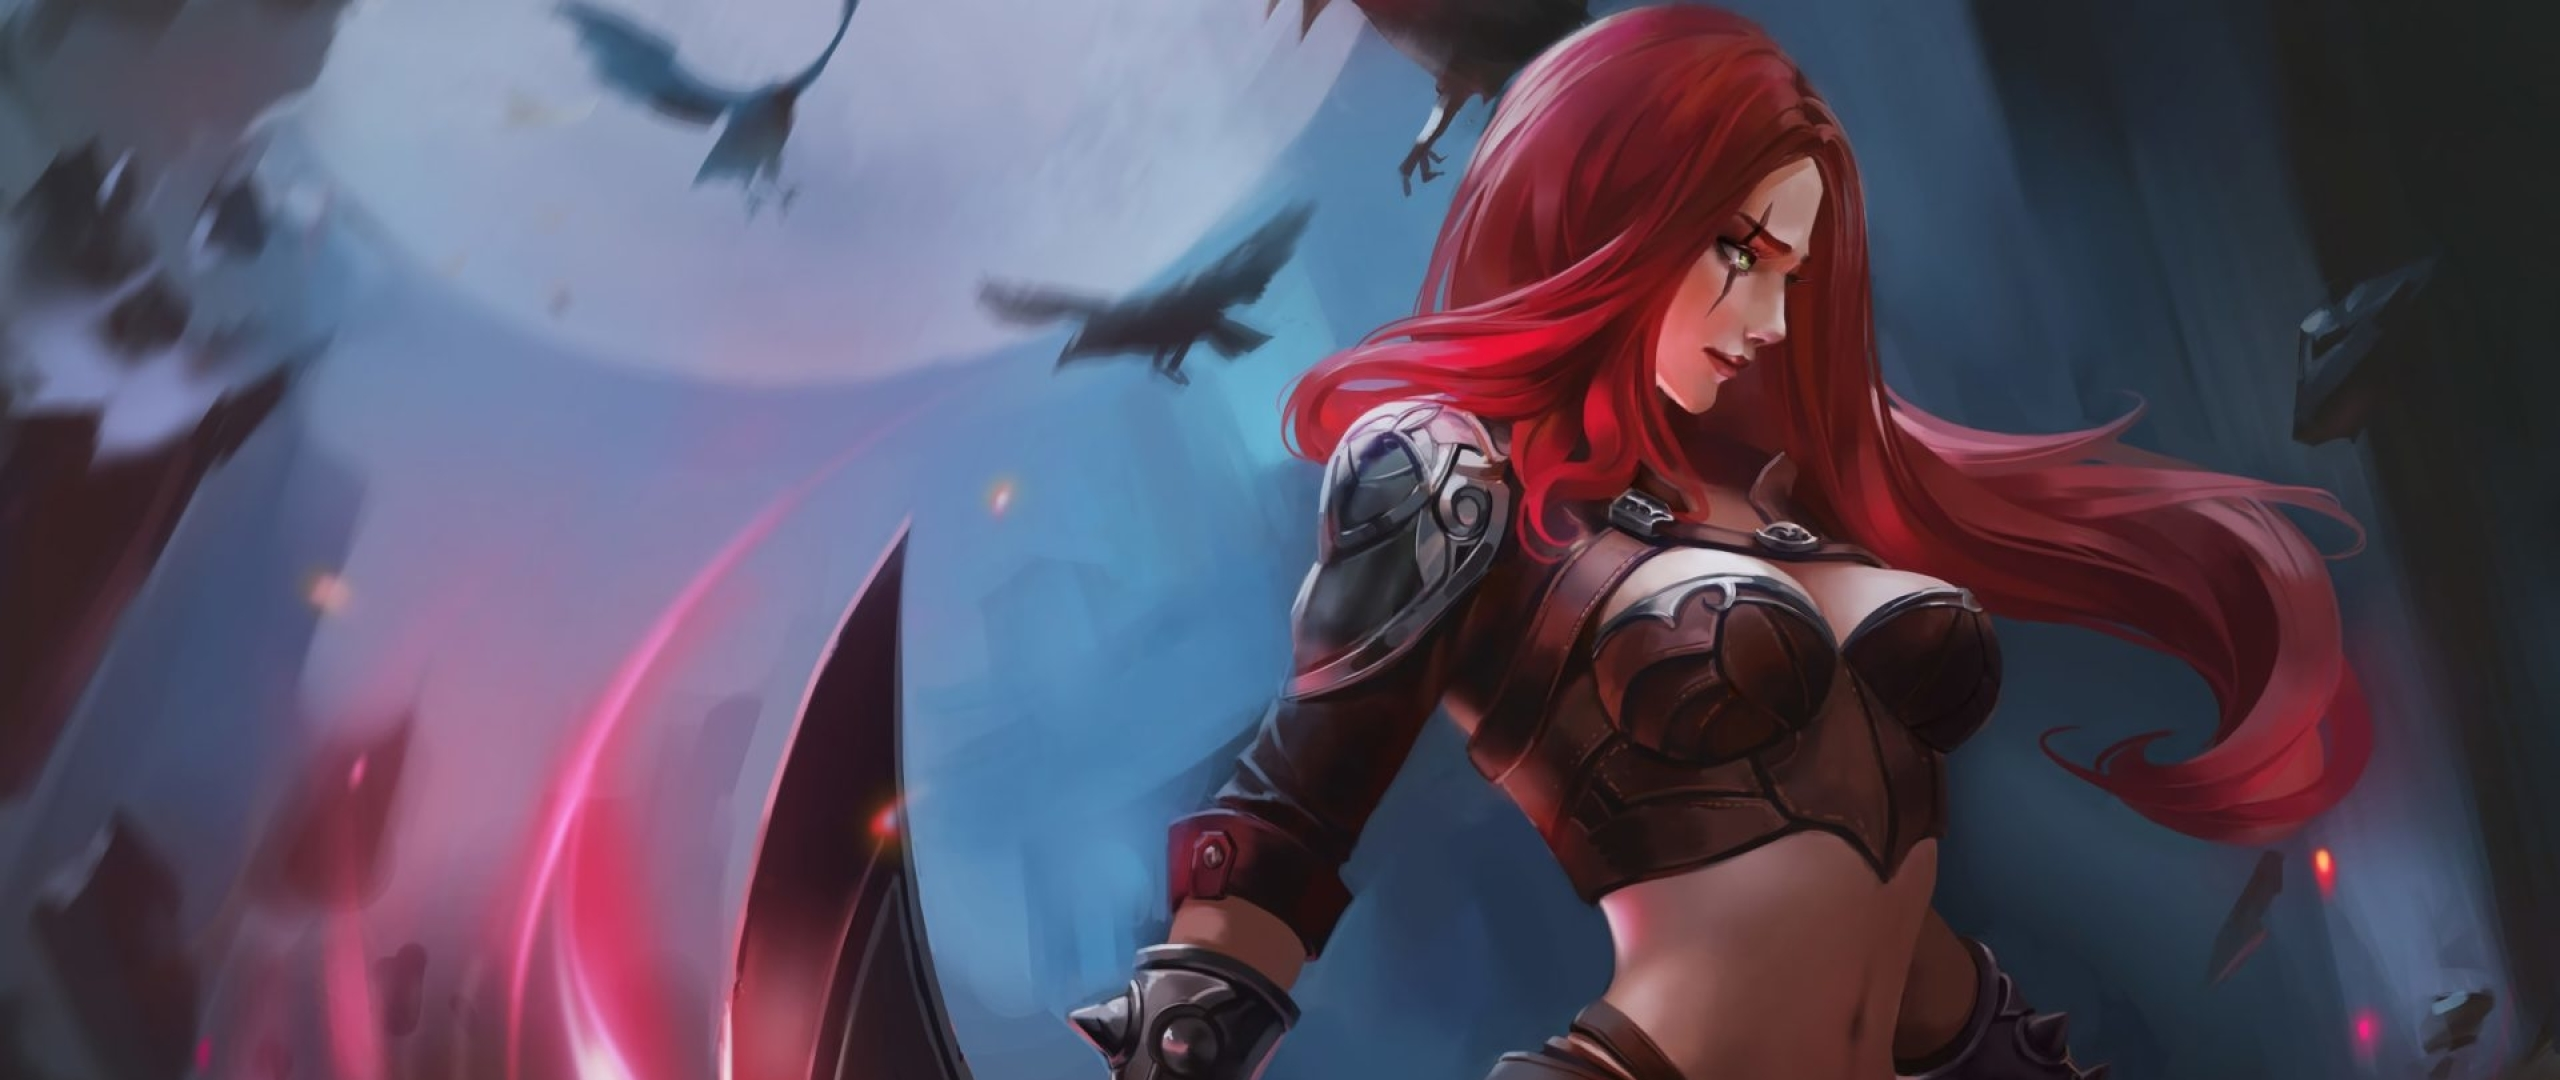 2560x1080 Katarina In League Of Legends 2560x1080 Resolution